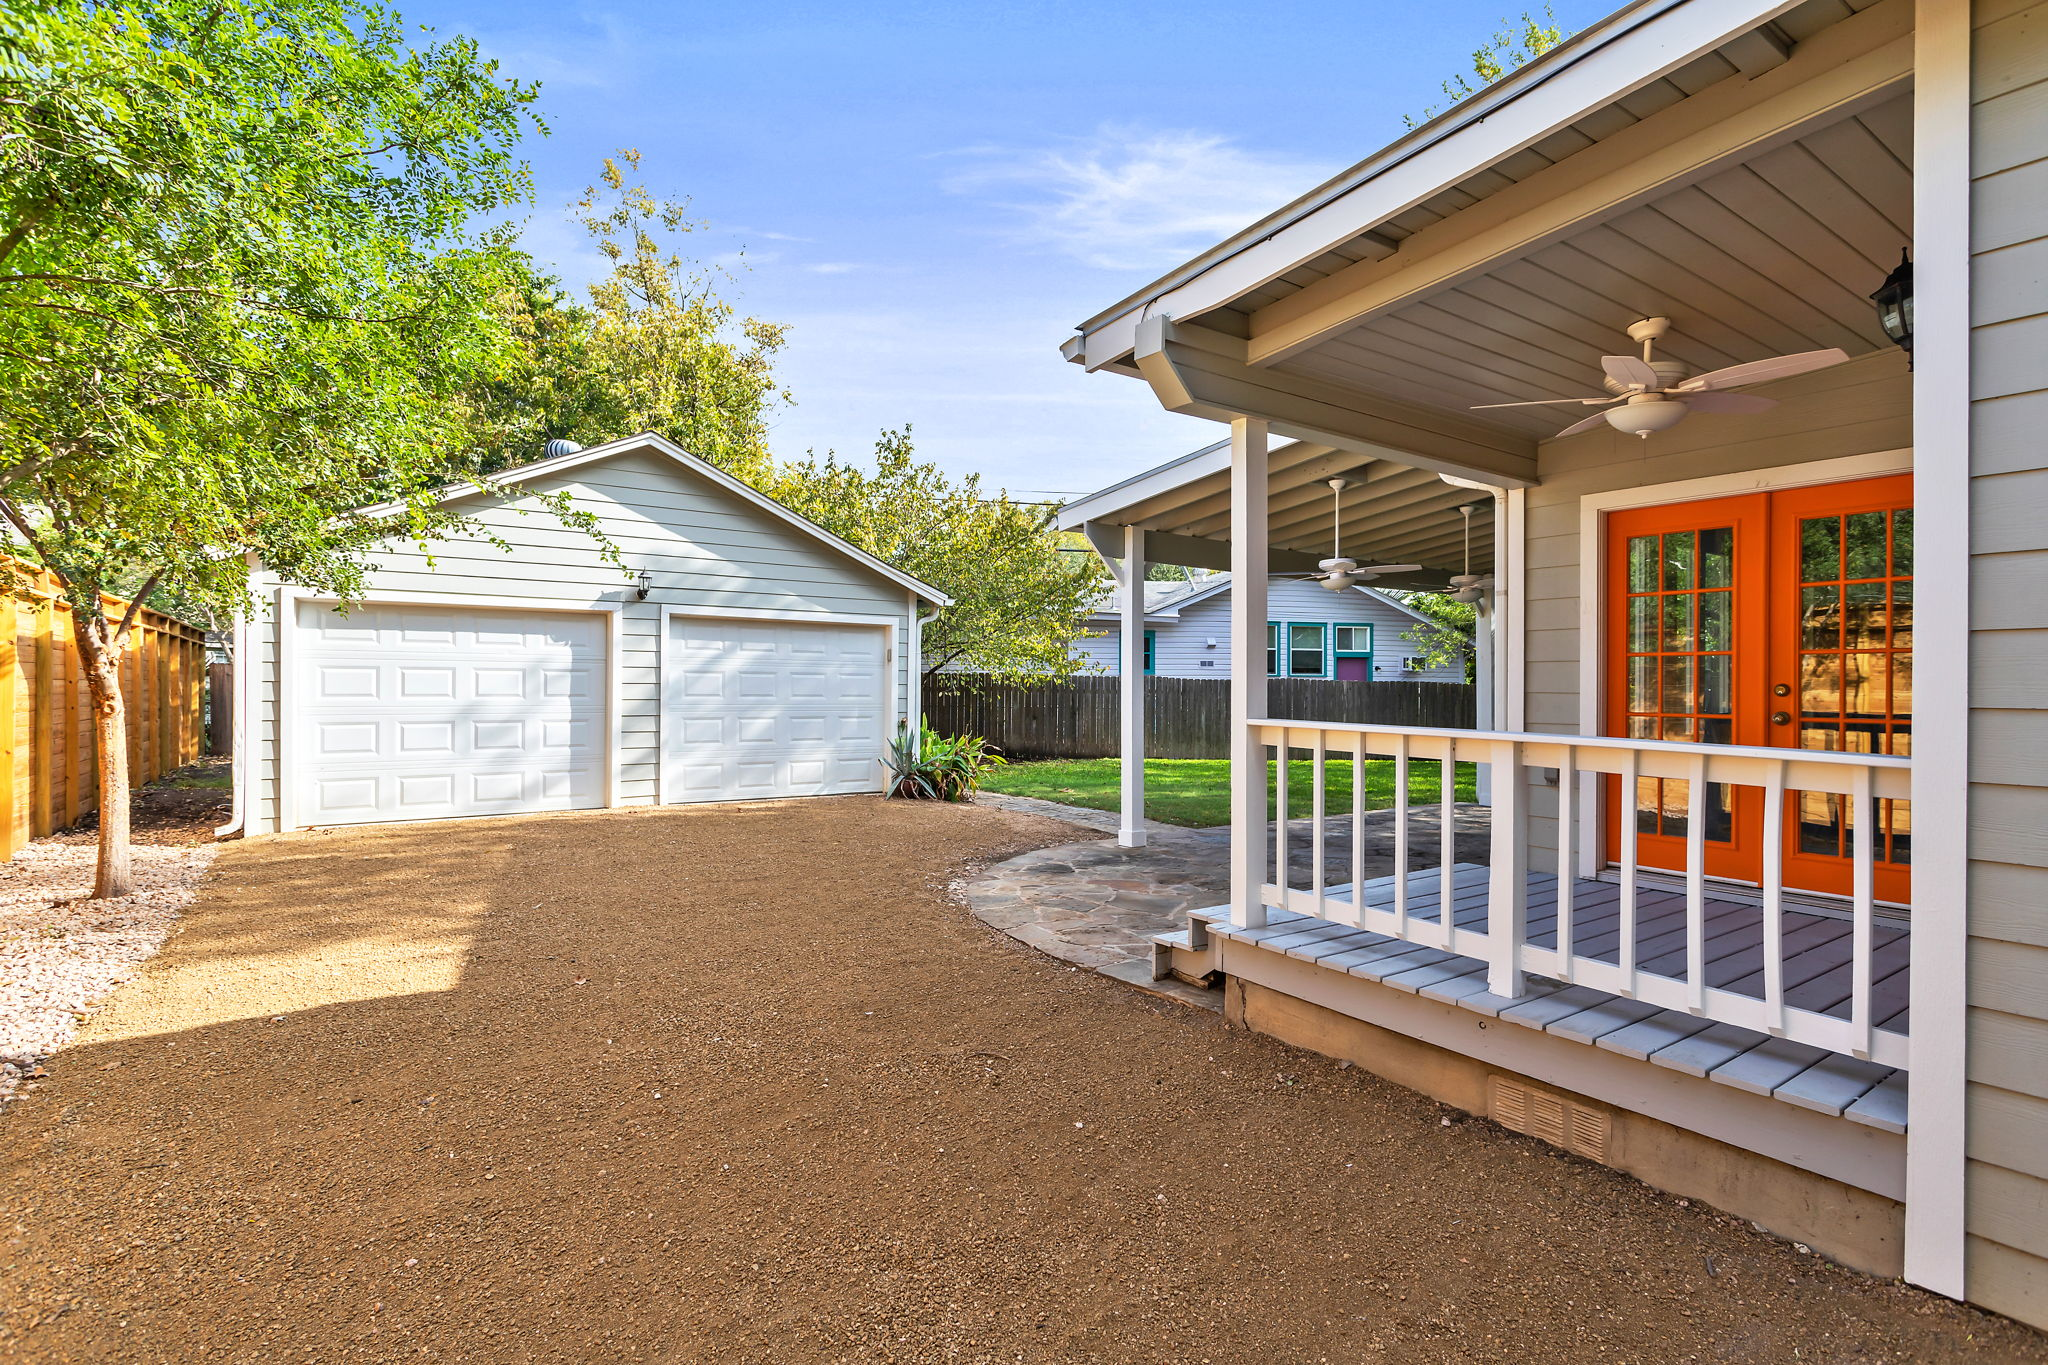 Back porch leads to detached 2-car garage